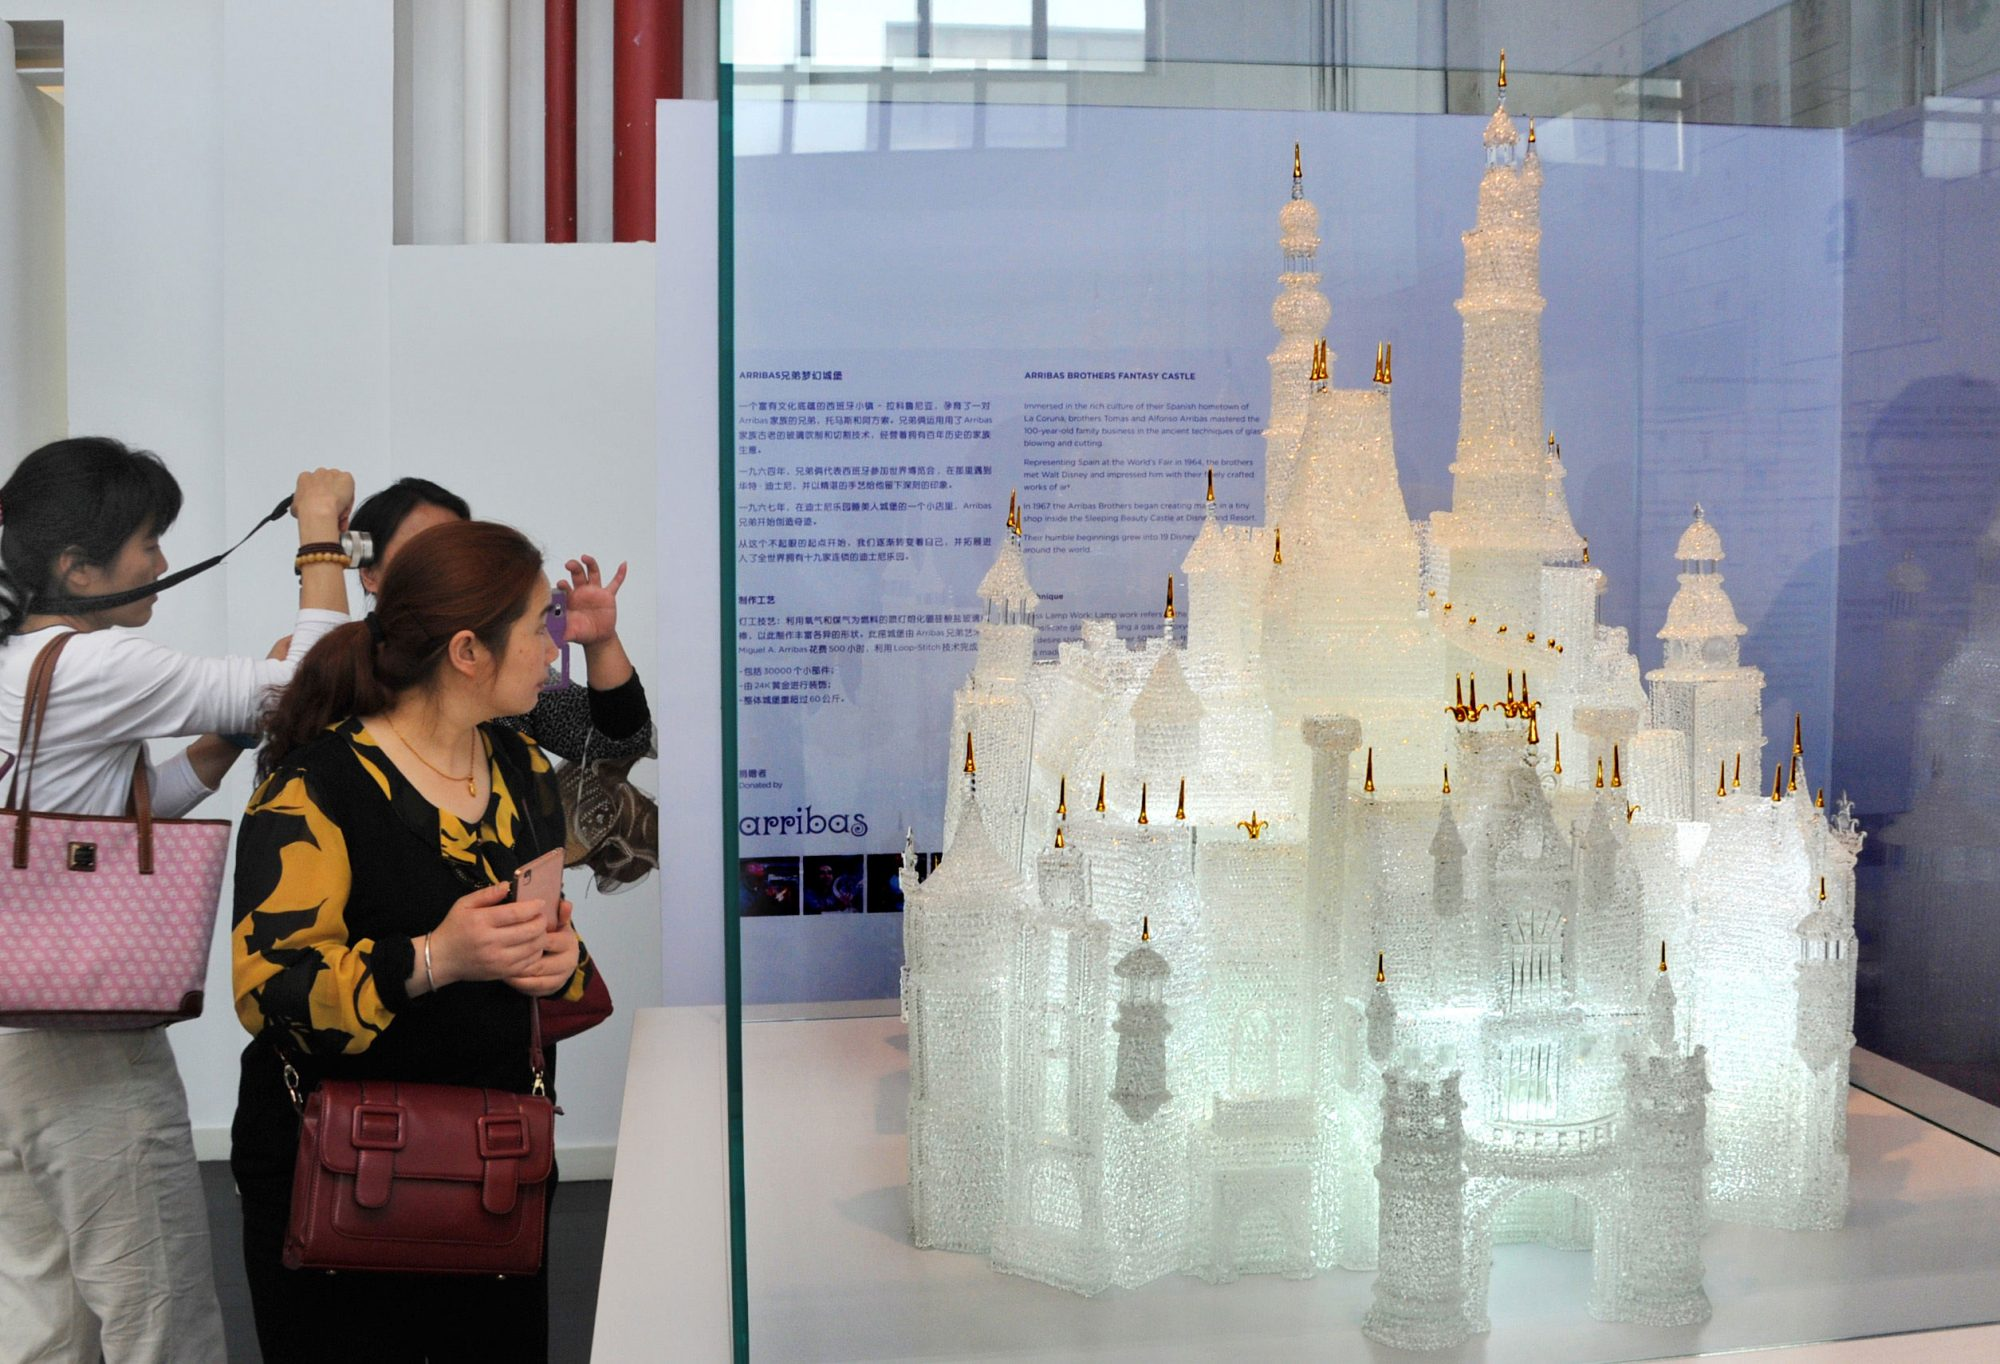 glass sculpture of Disney castle at Shanghai Museum of Glass